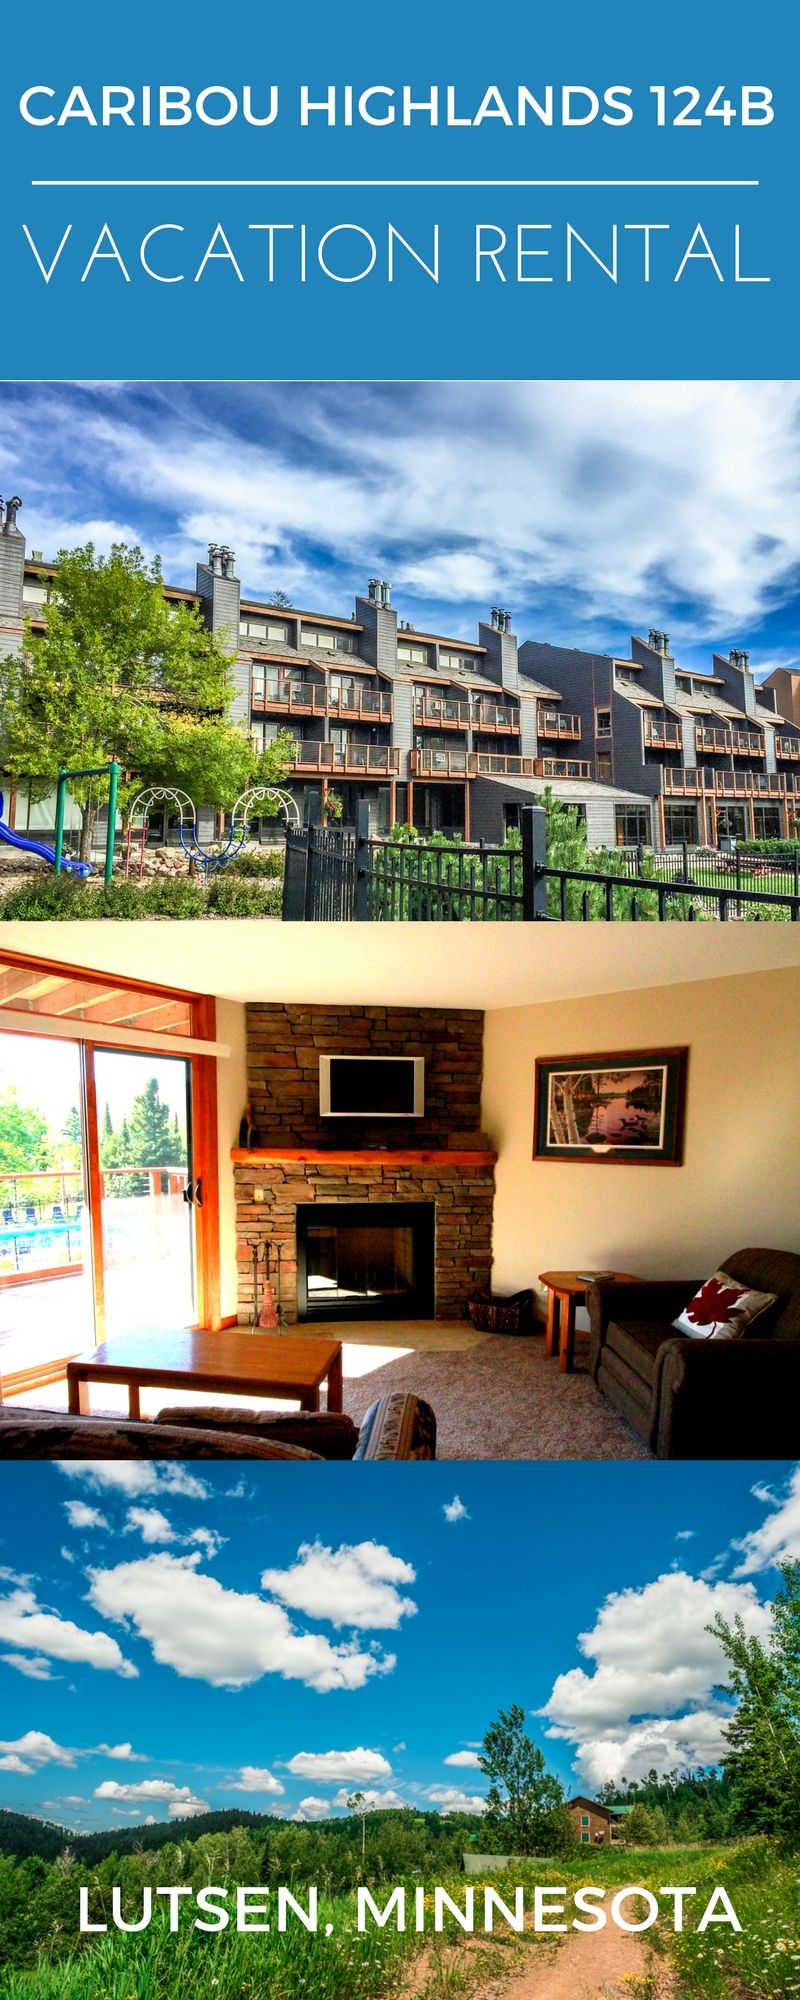 tahoe view at caribou highlands is located in the birch building of